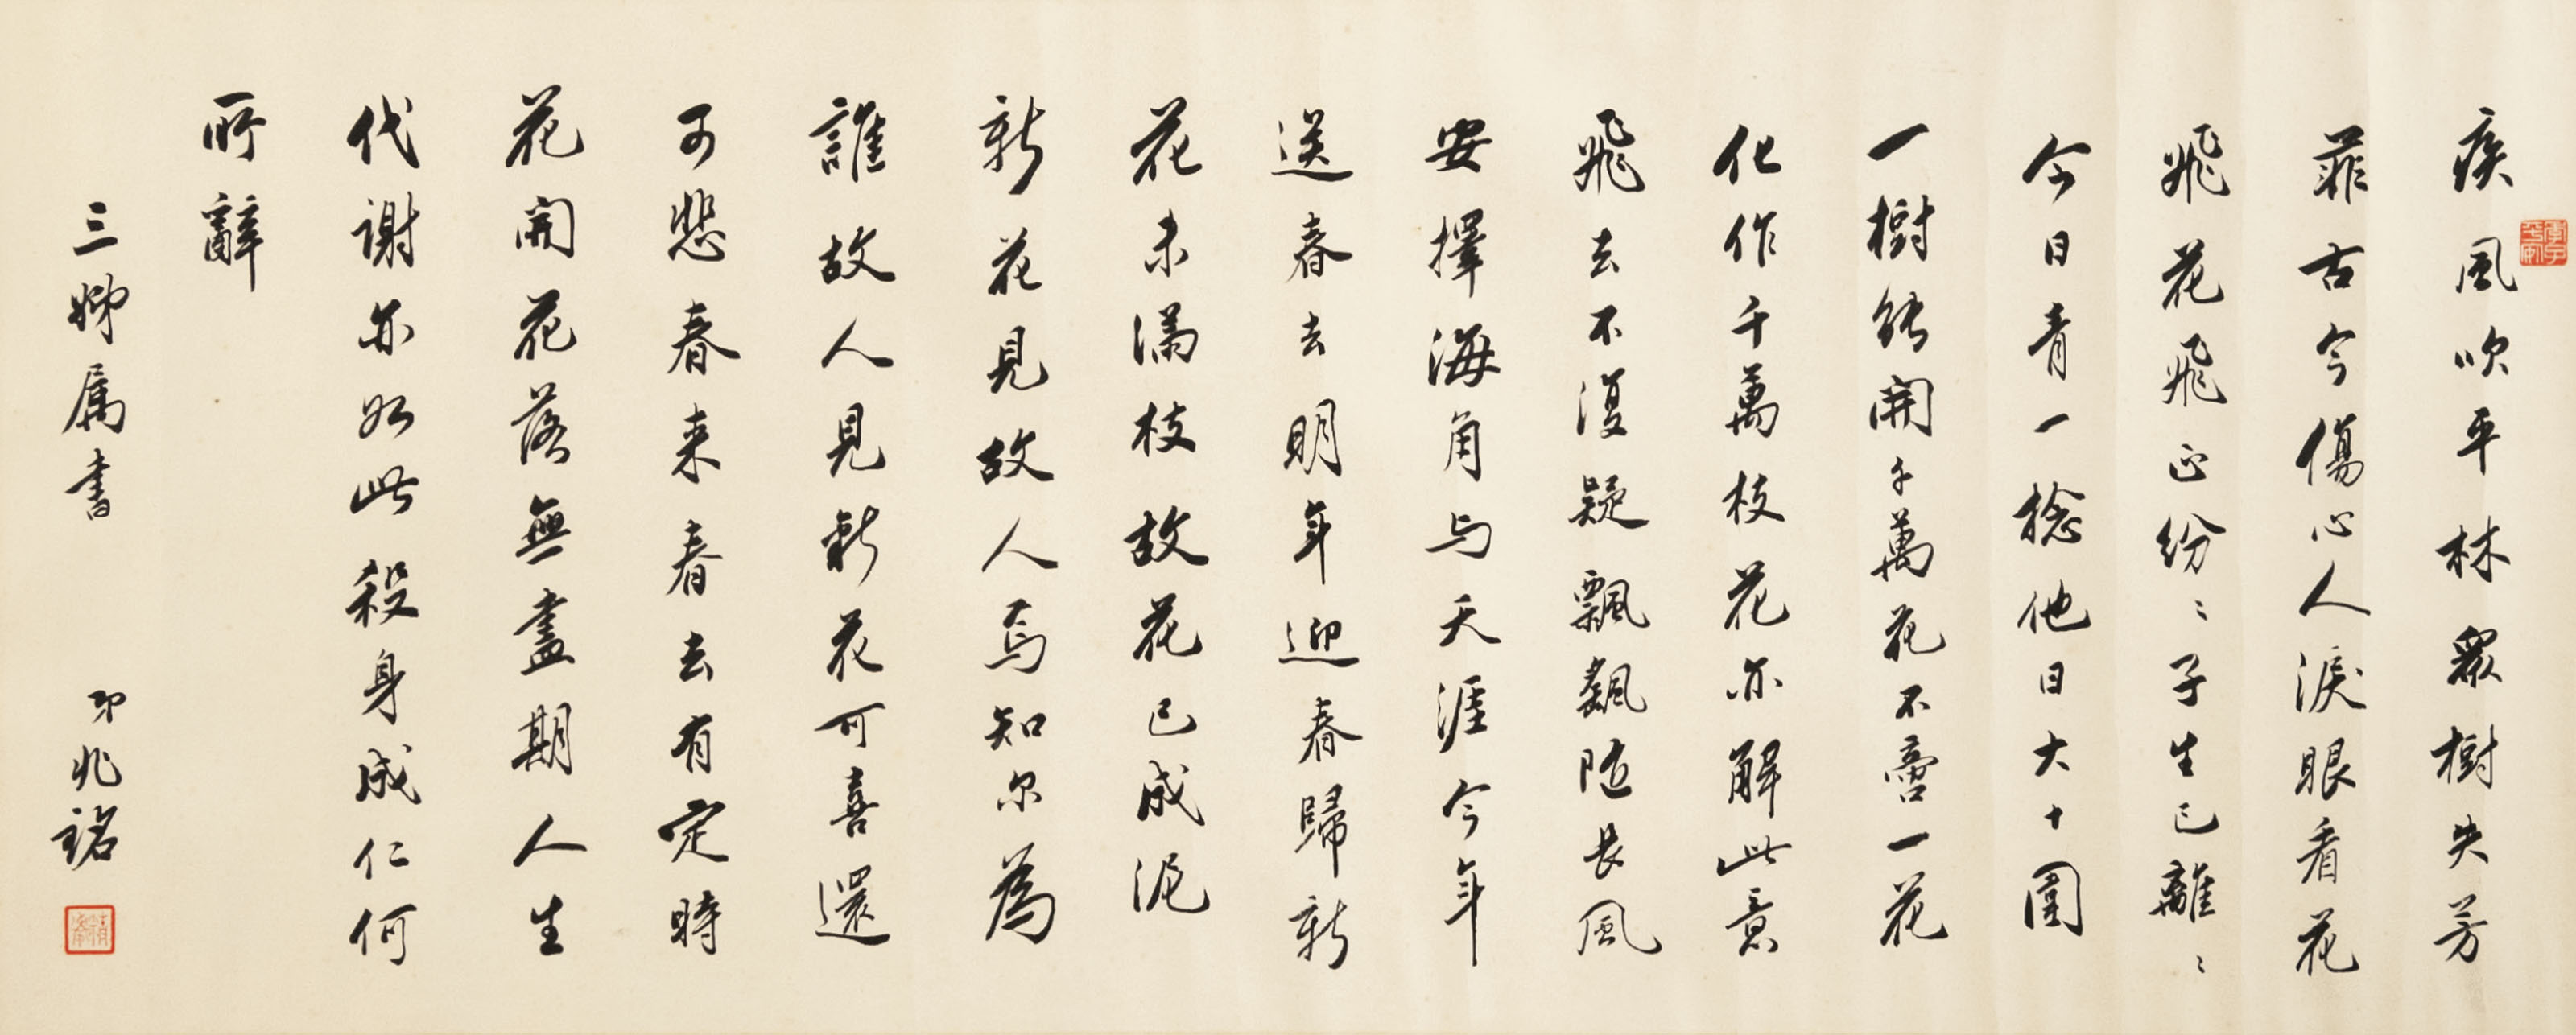 Poem from Shuangzhaolou – Floating Petals